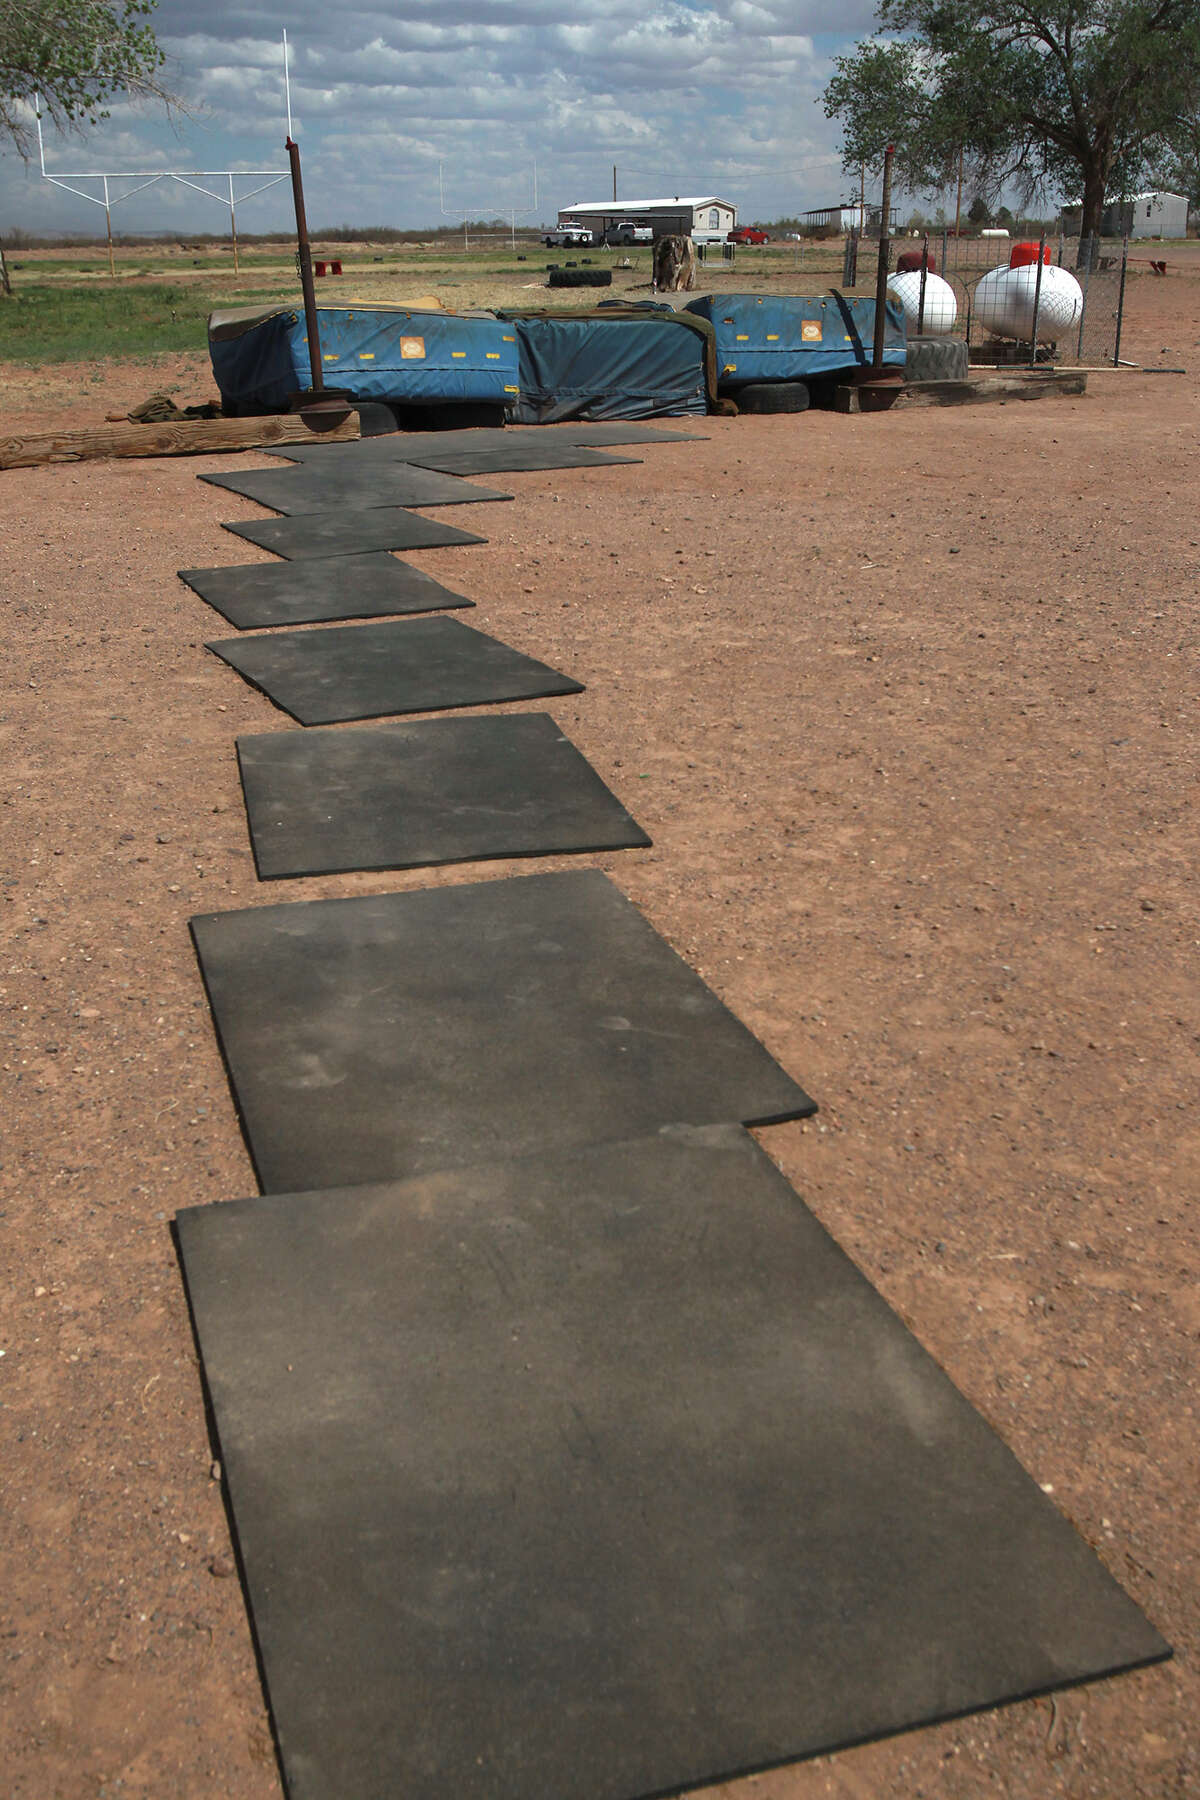 This is the dilapidated high jump pit used by students in the Valentine Independent School district in Valentine, Texas. Valentine, Texas is located in west Texas in Jeff Davis County. Student Latham Garnsey has used the pit with success. Students use the black mats to approach the pit so they don't slip in the gravel.